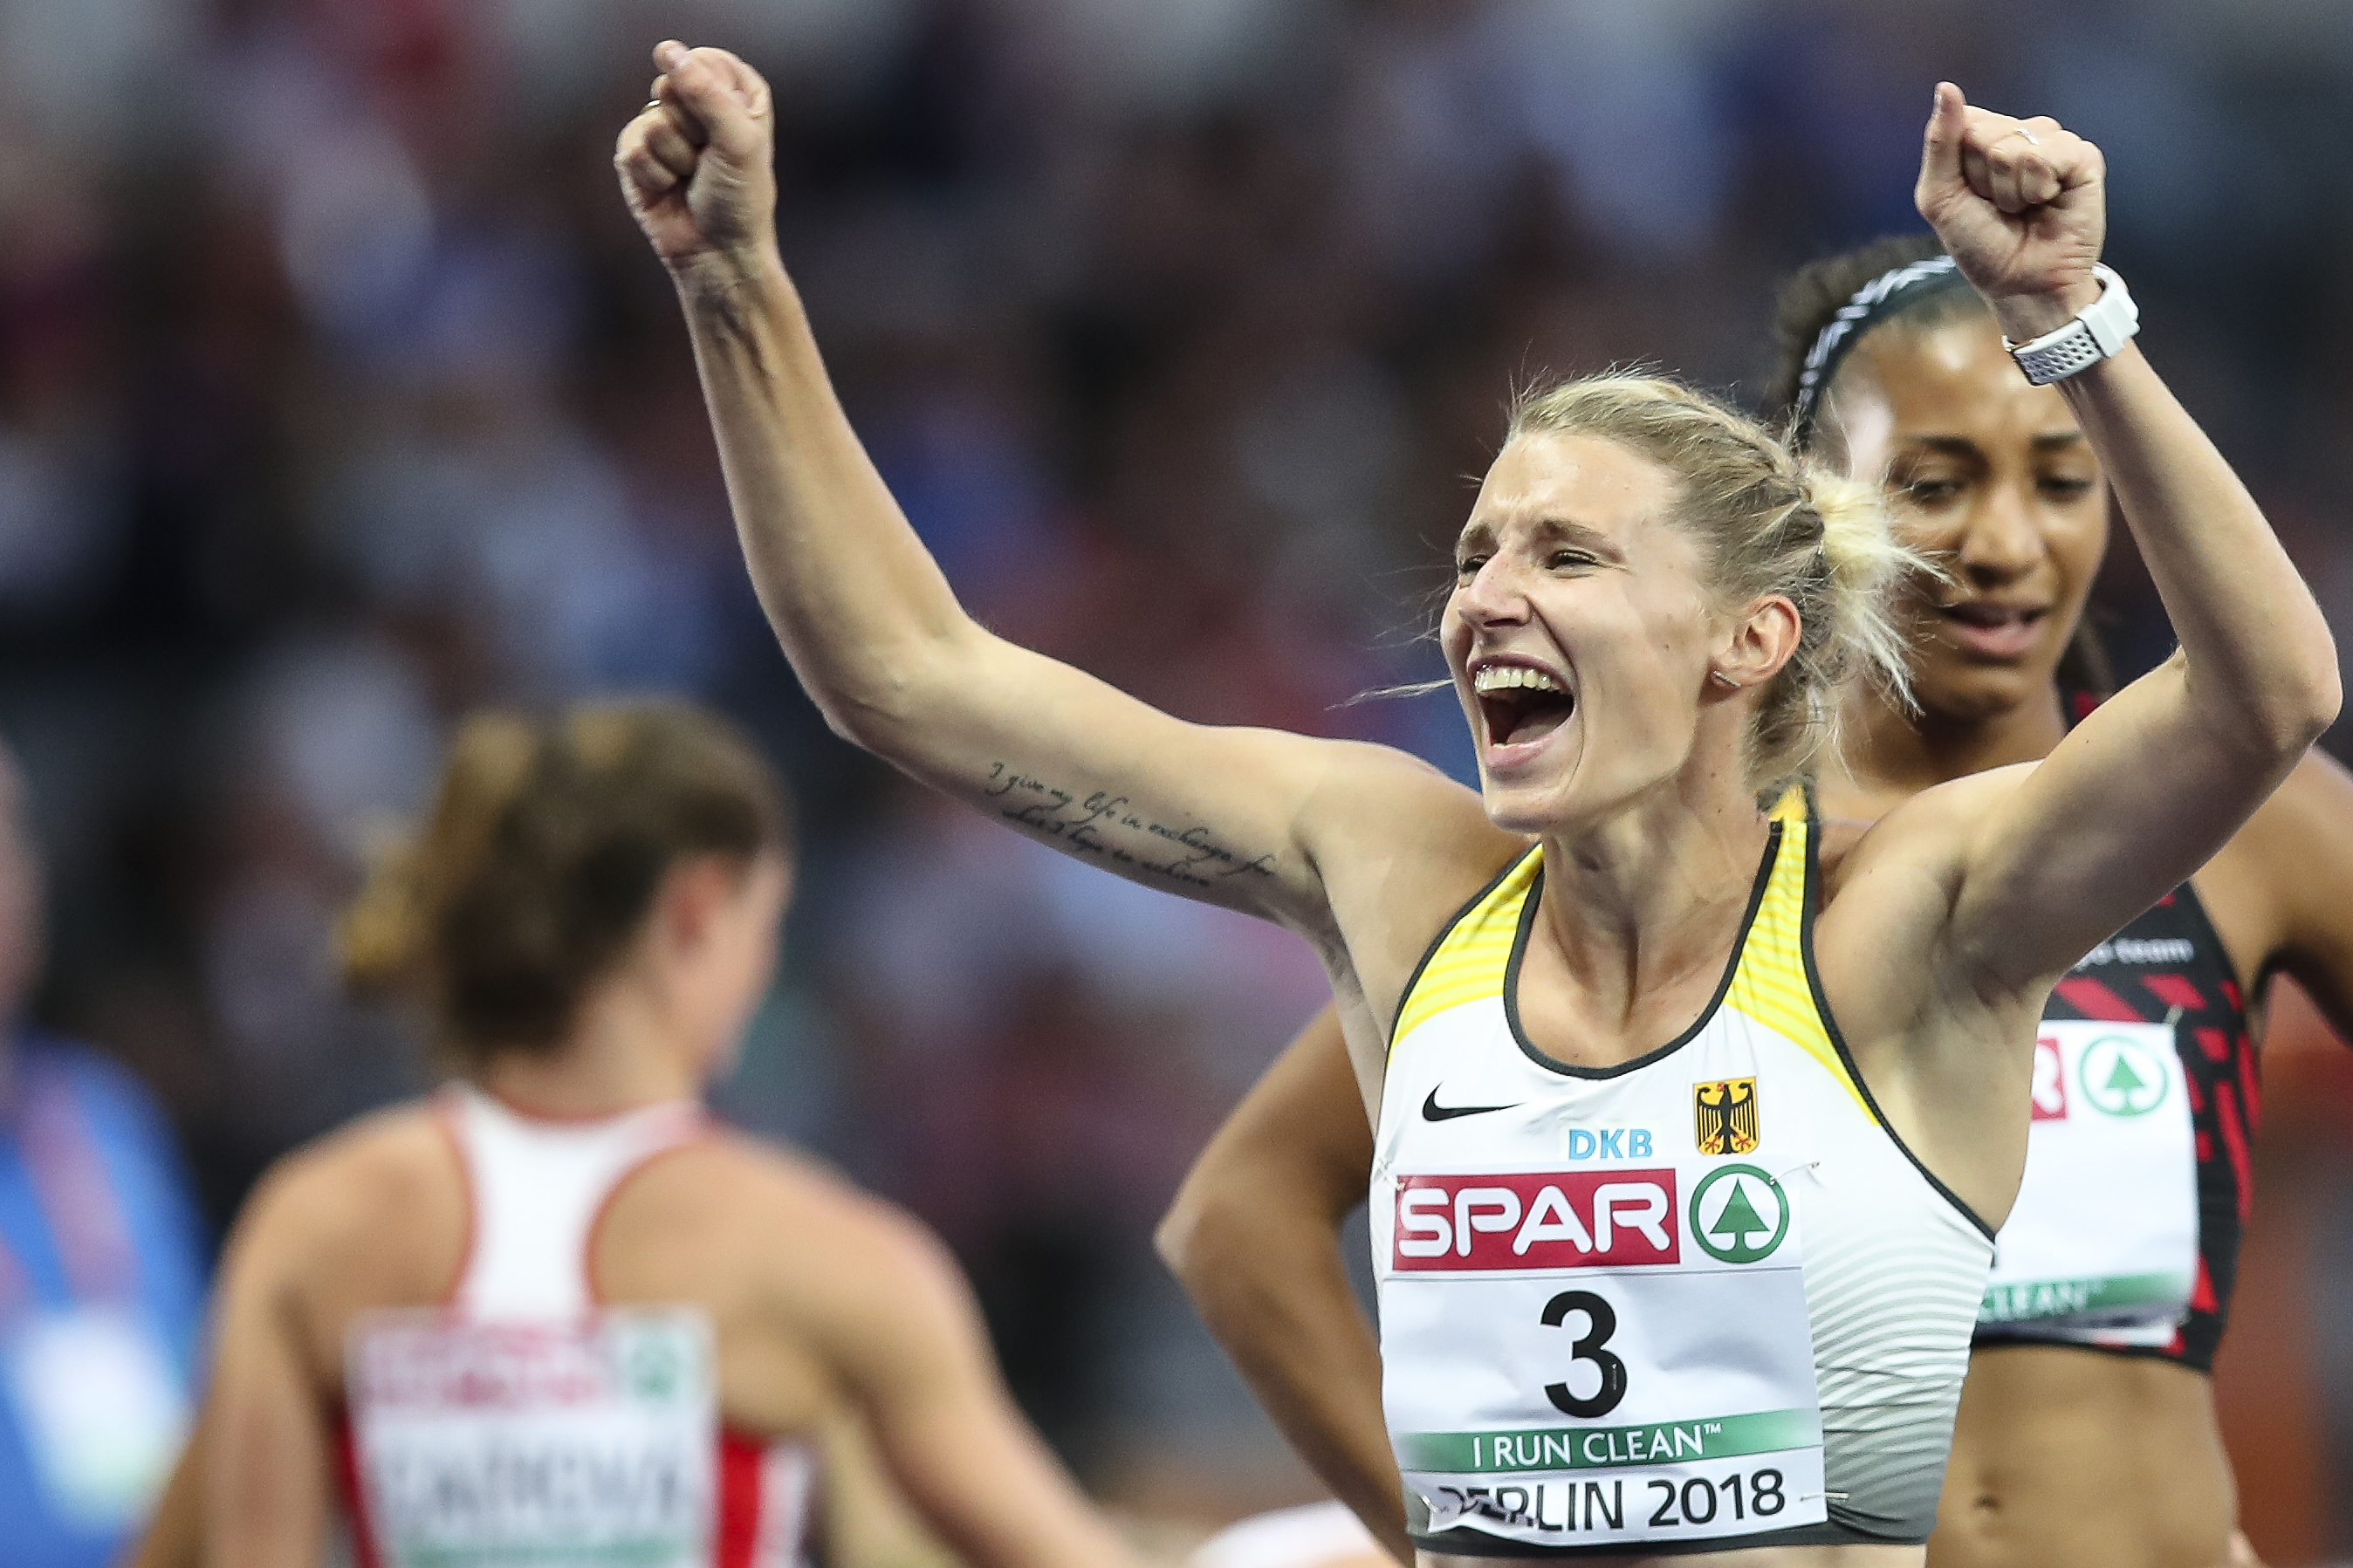 European Athletics Championships; Berlin, 10.08.2018